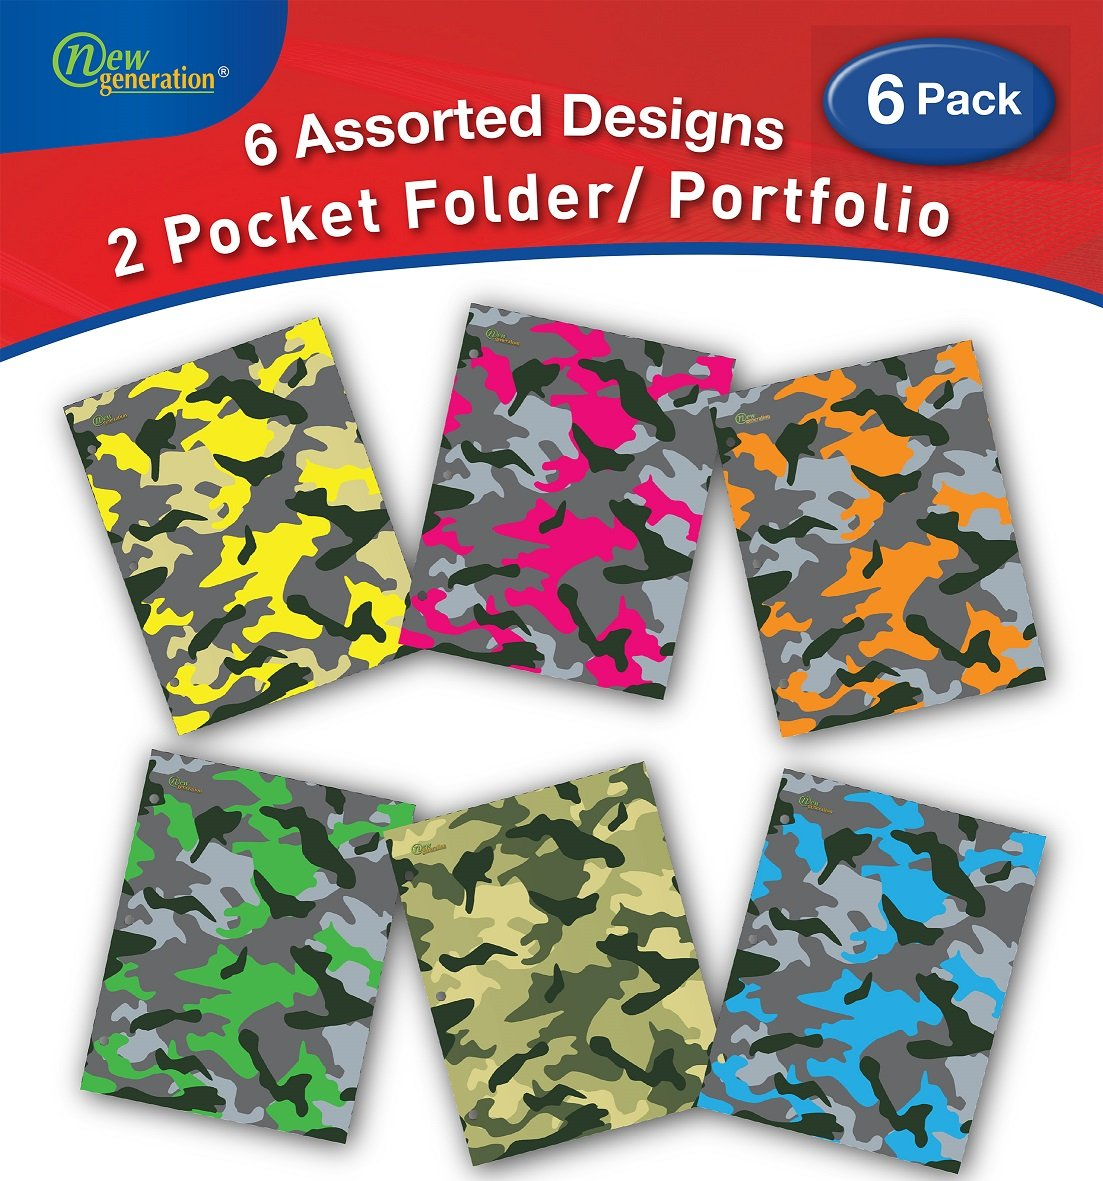 New Generation - Camouflage - 2 Pocket Folders / Portfolio 6 PACK Letter Size with 3 Hole Punch to use with your Binder Heavy Duty Glossy Finish UV Laminated Folder - Assorted 6 Fashion Design 6 PACK